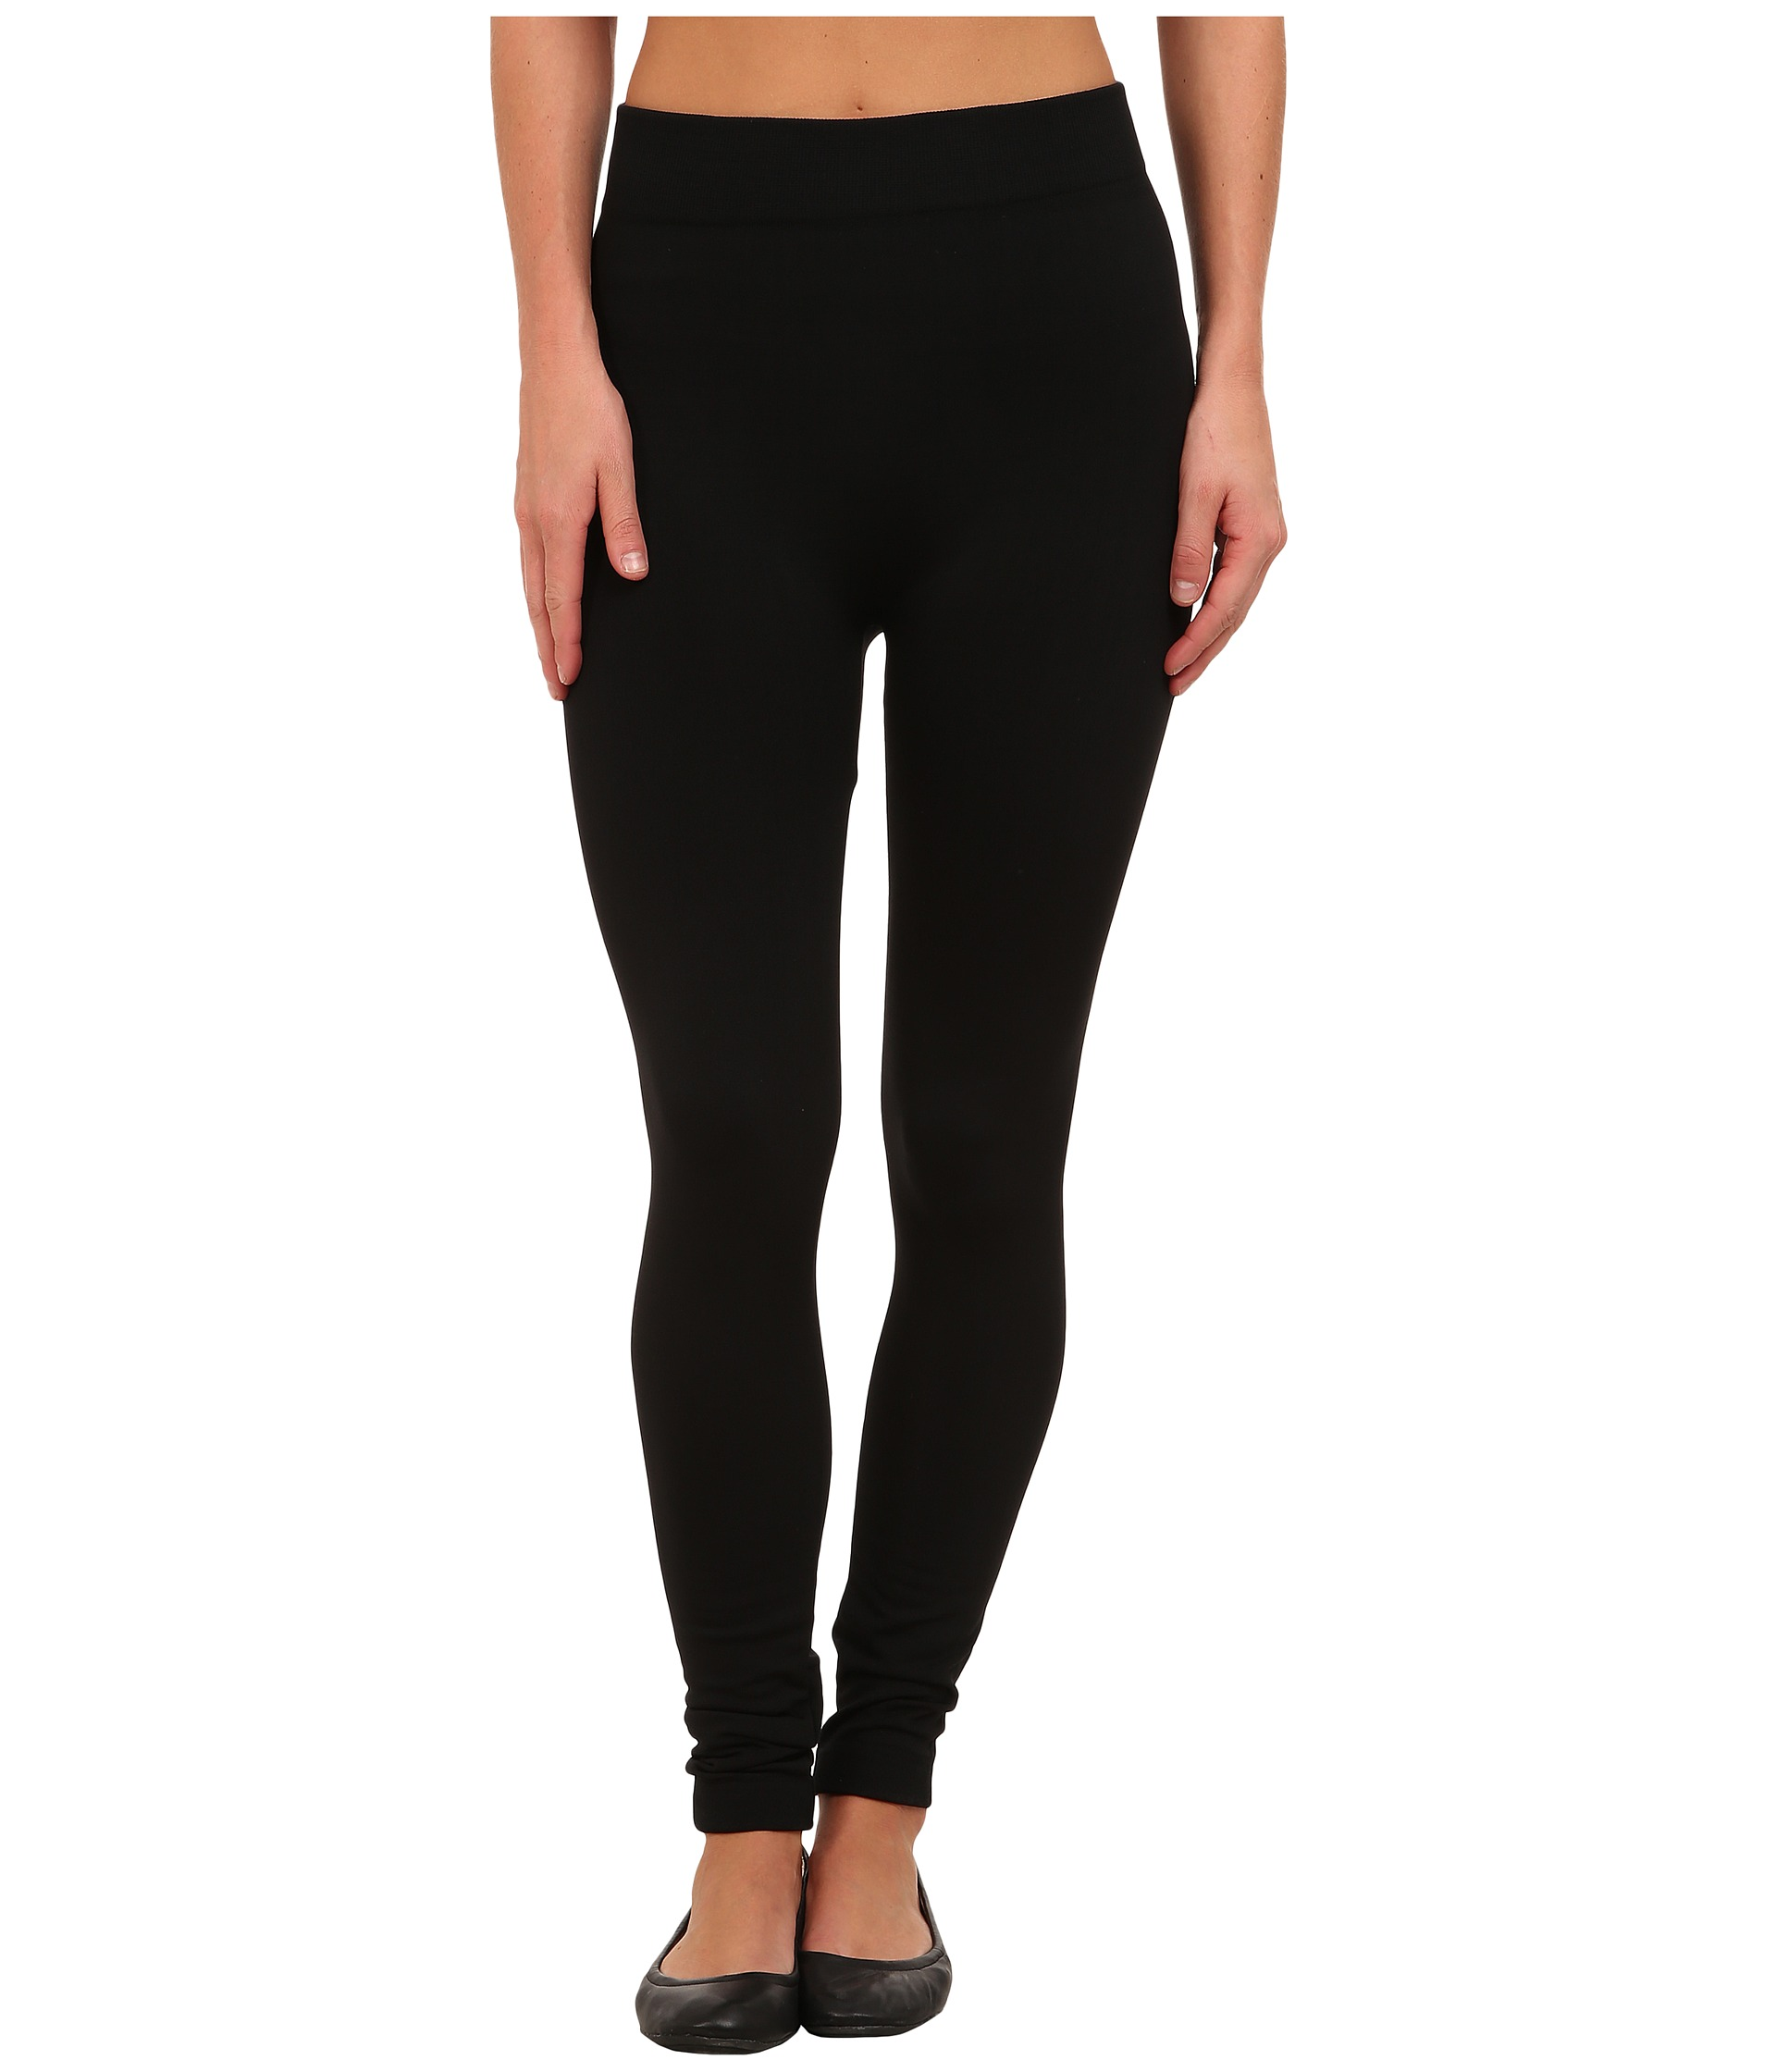 Free Shipping - We have the very best selection of women's fleece leggings for amazing warmth and fit at the lowest online prices.